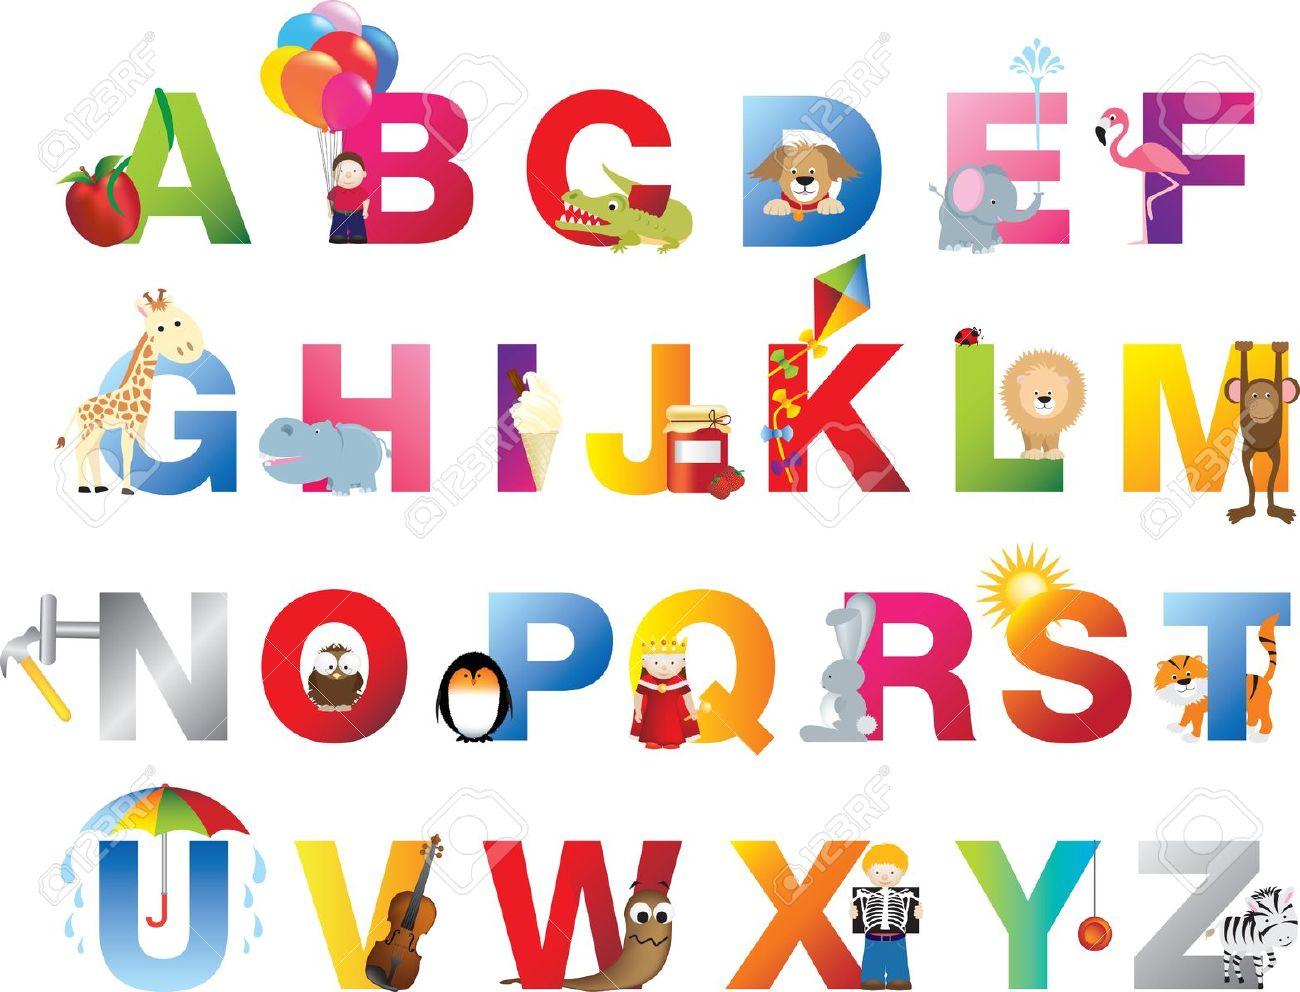 The Complete Childrens English Alphabet Spelt Out With Different.